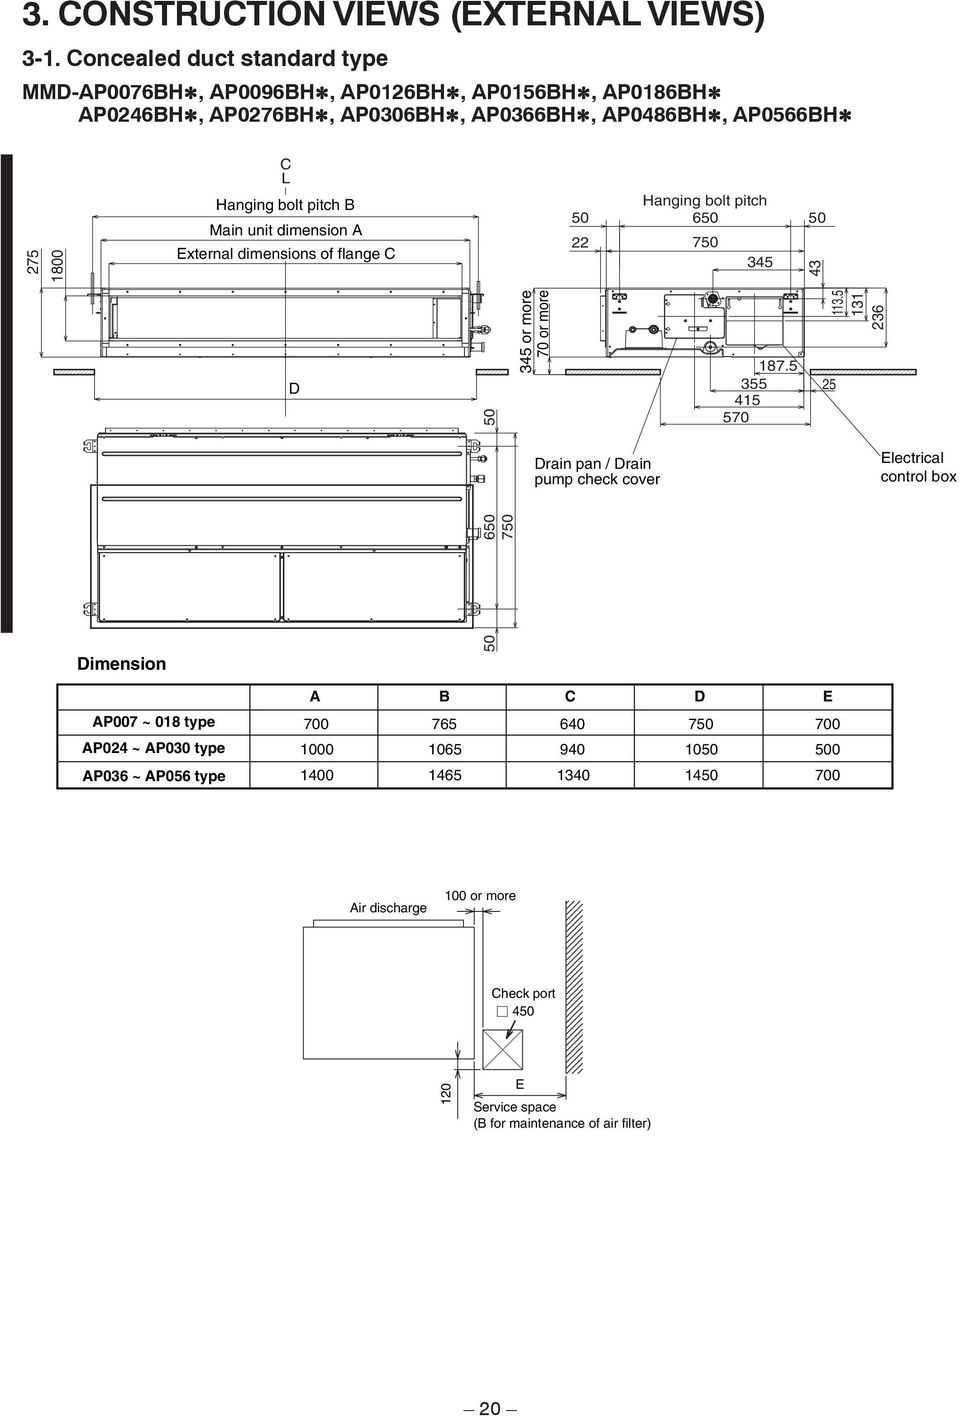 pitch B Main unit dimension A External dimensions of flange C Hanging bolt  pitch 50 650